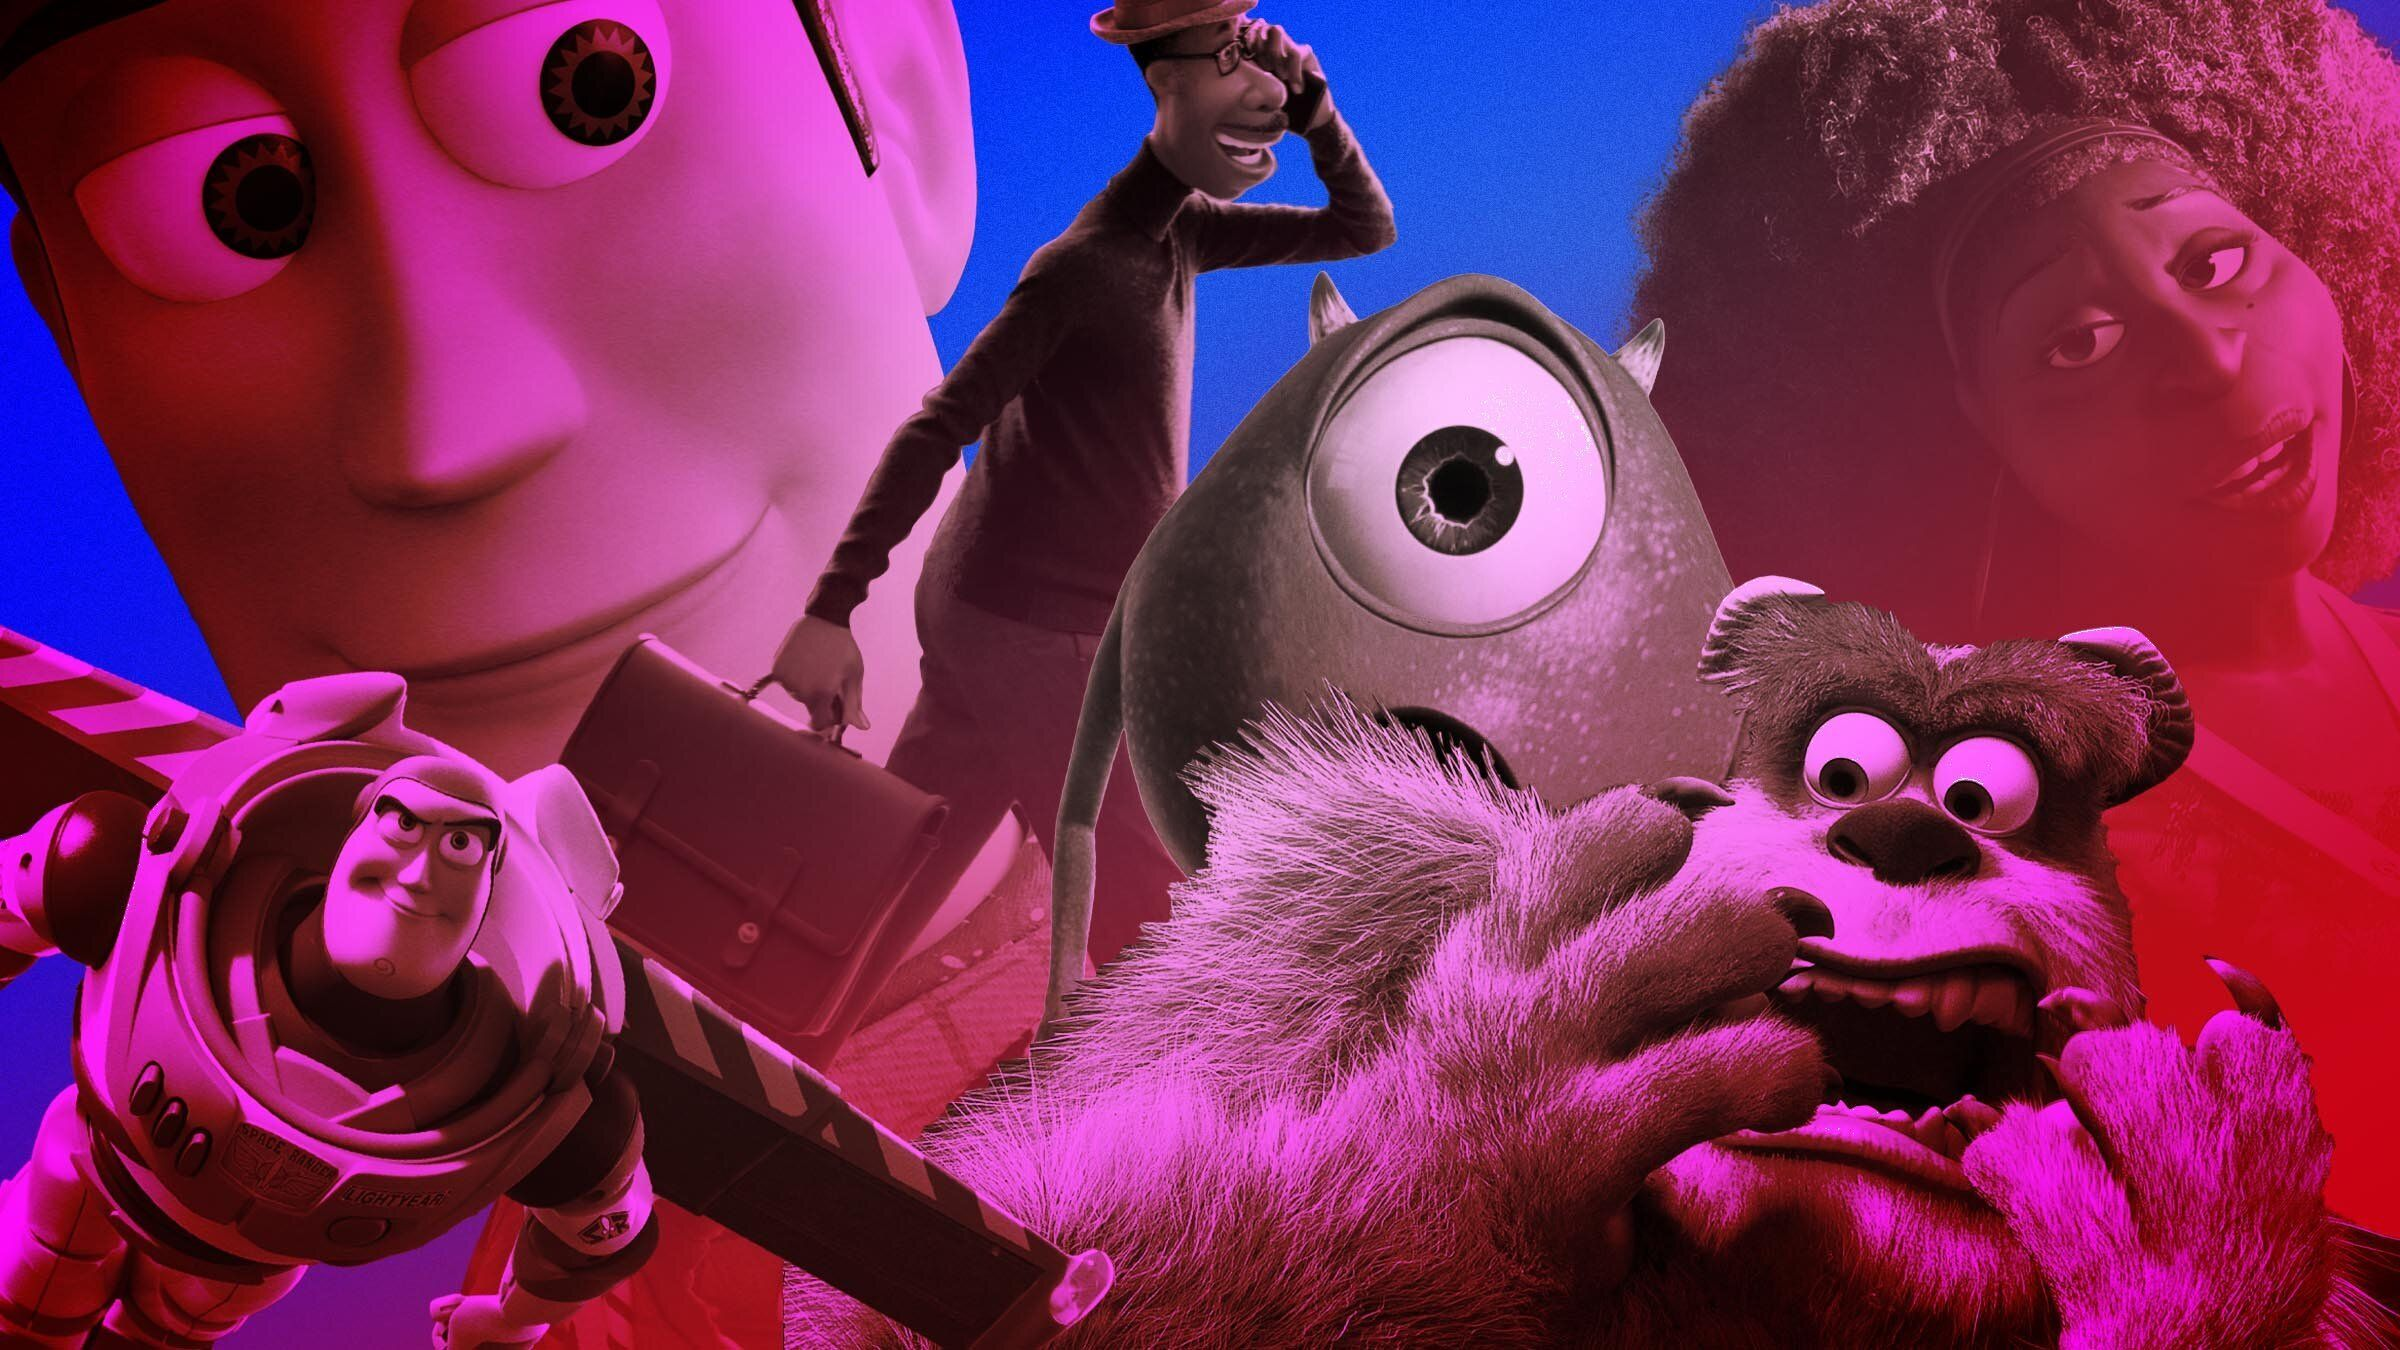 Will these Pixar questions ever be answered?